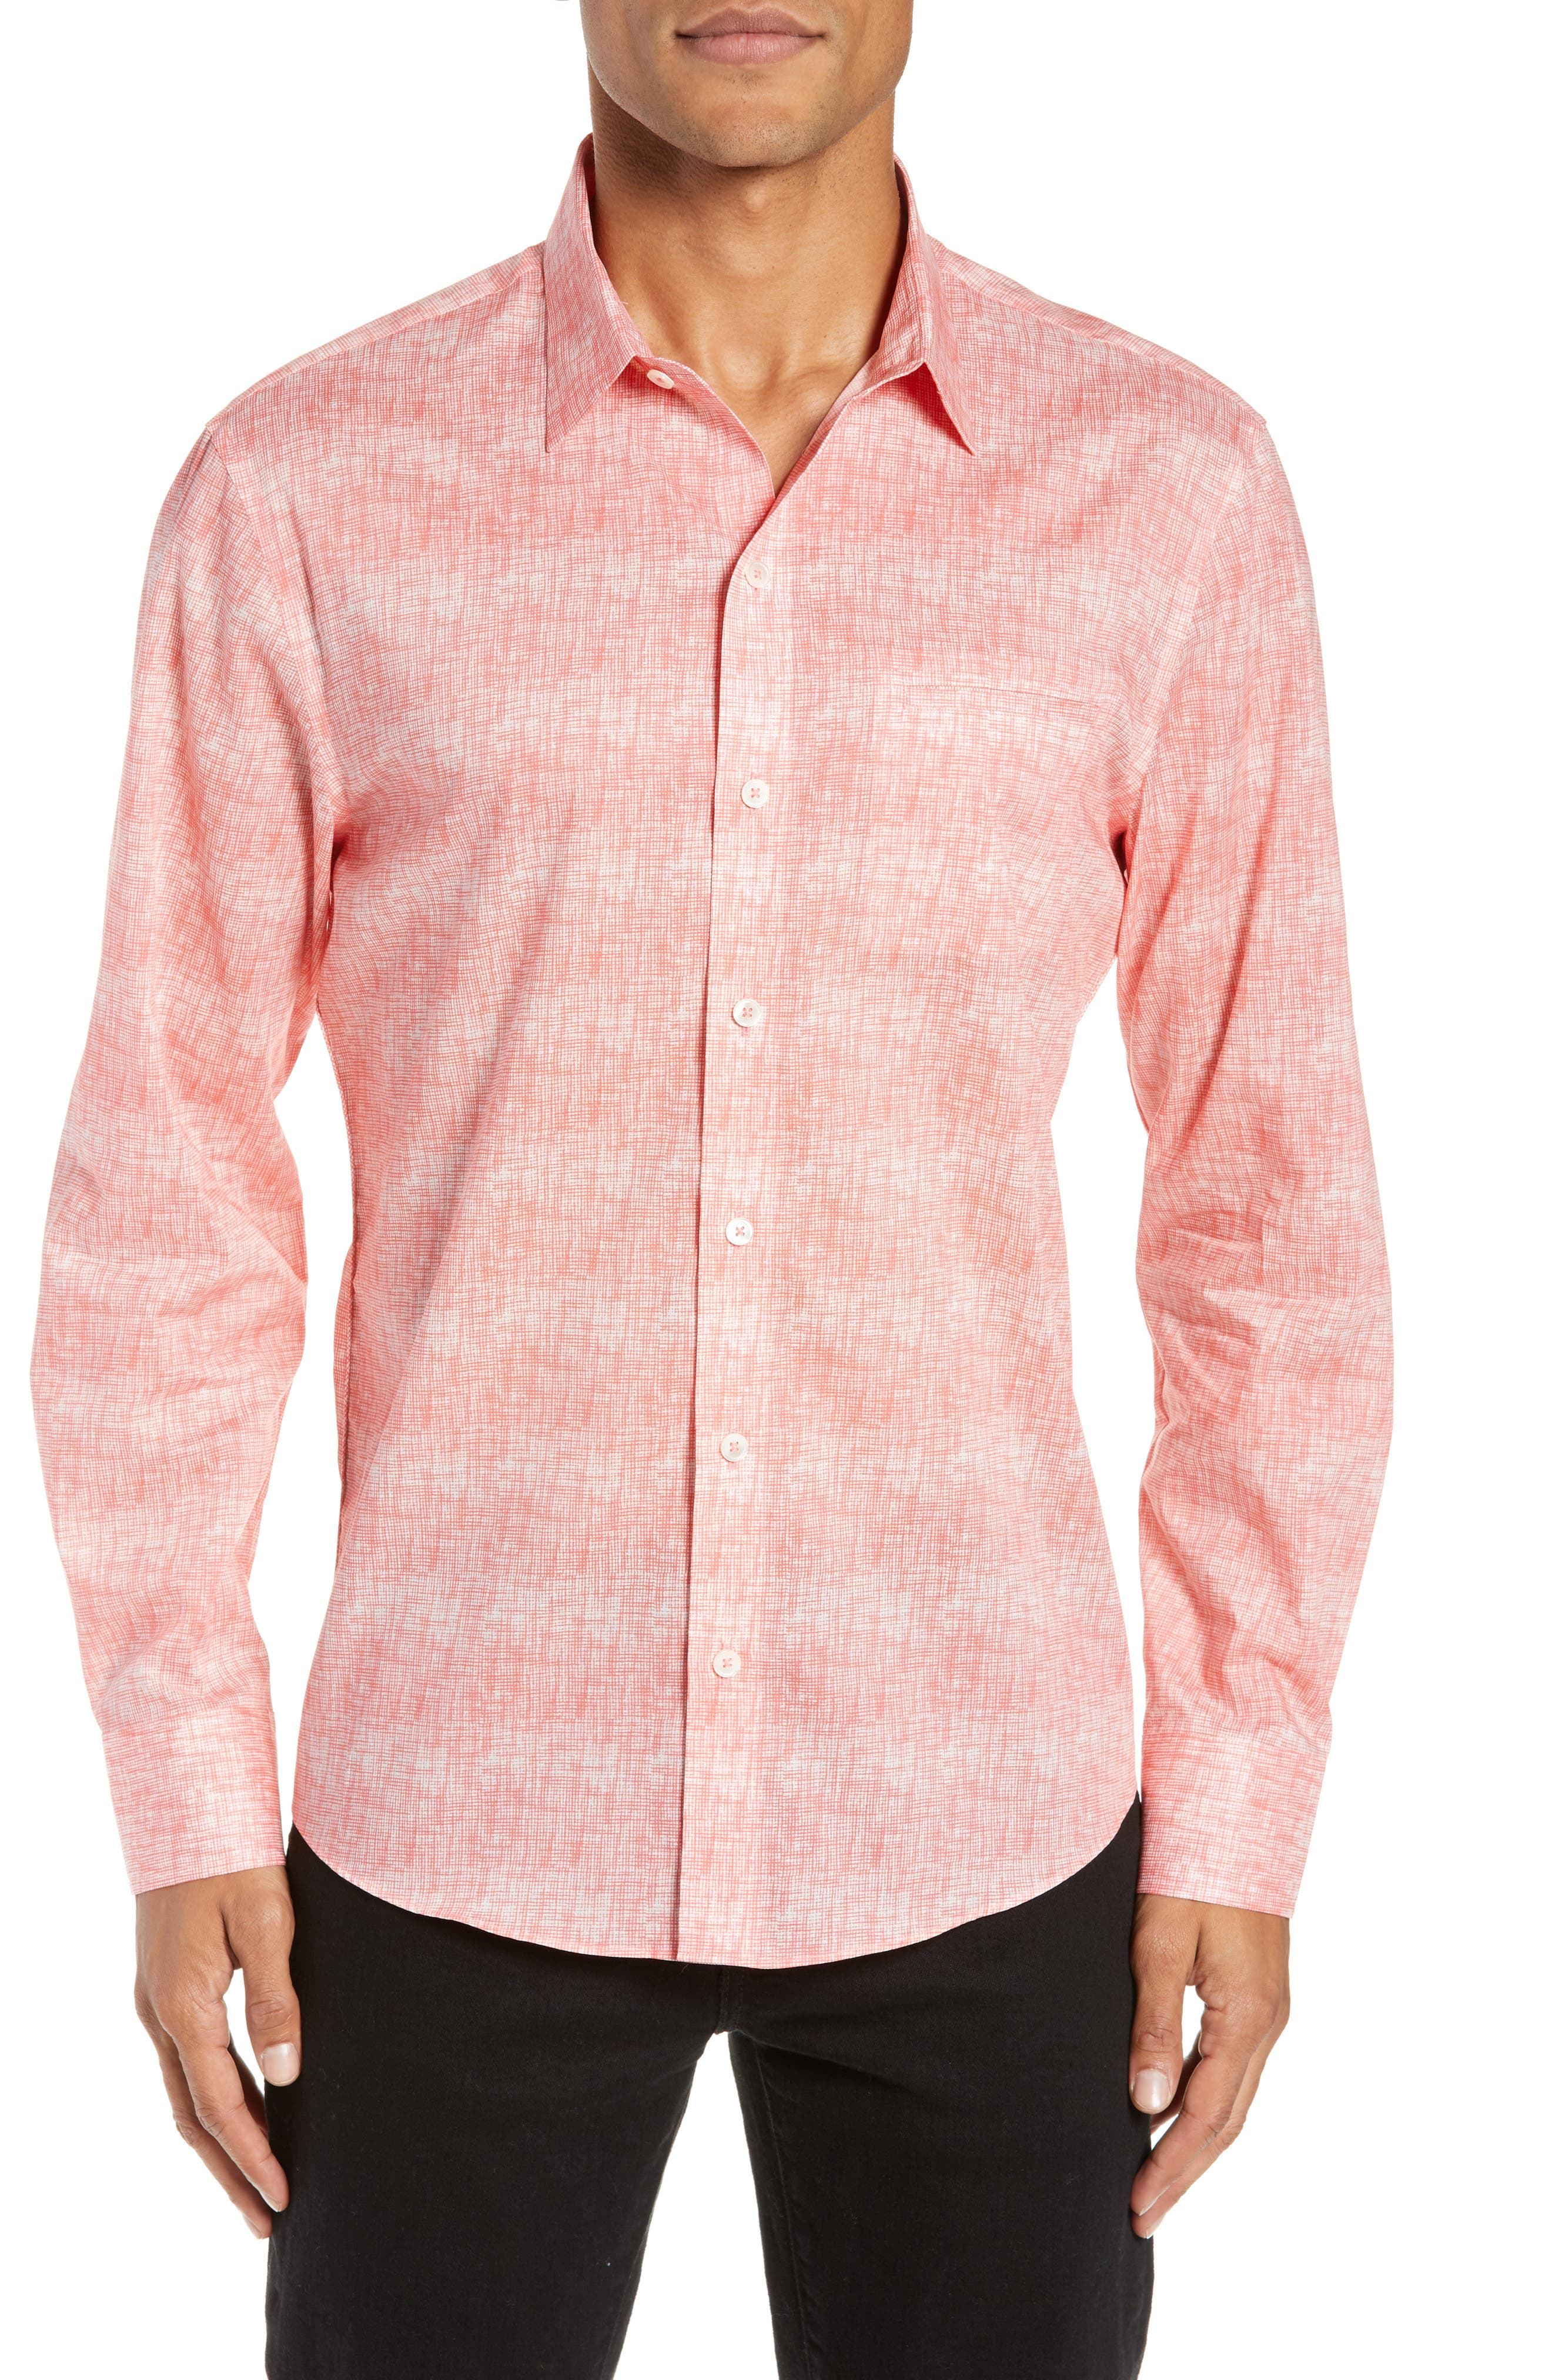 Griffin Regular Fit Sport Shirt,                         Main,                         color, PINK